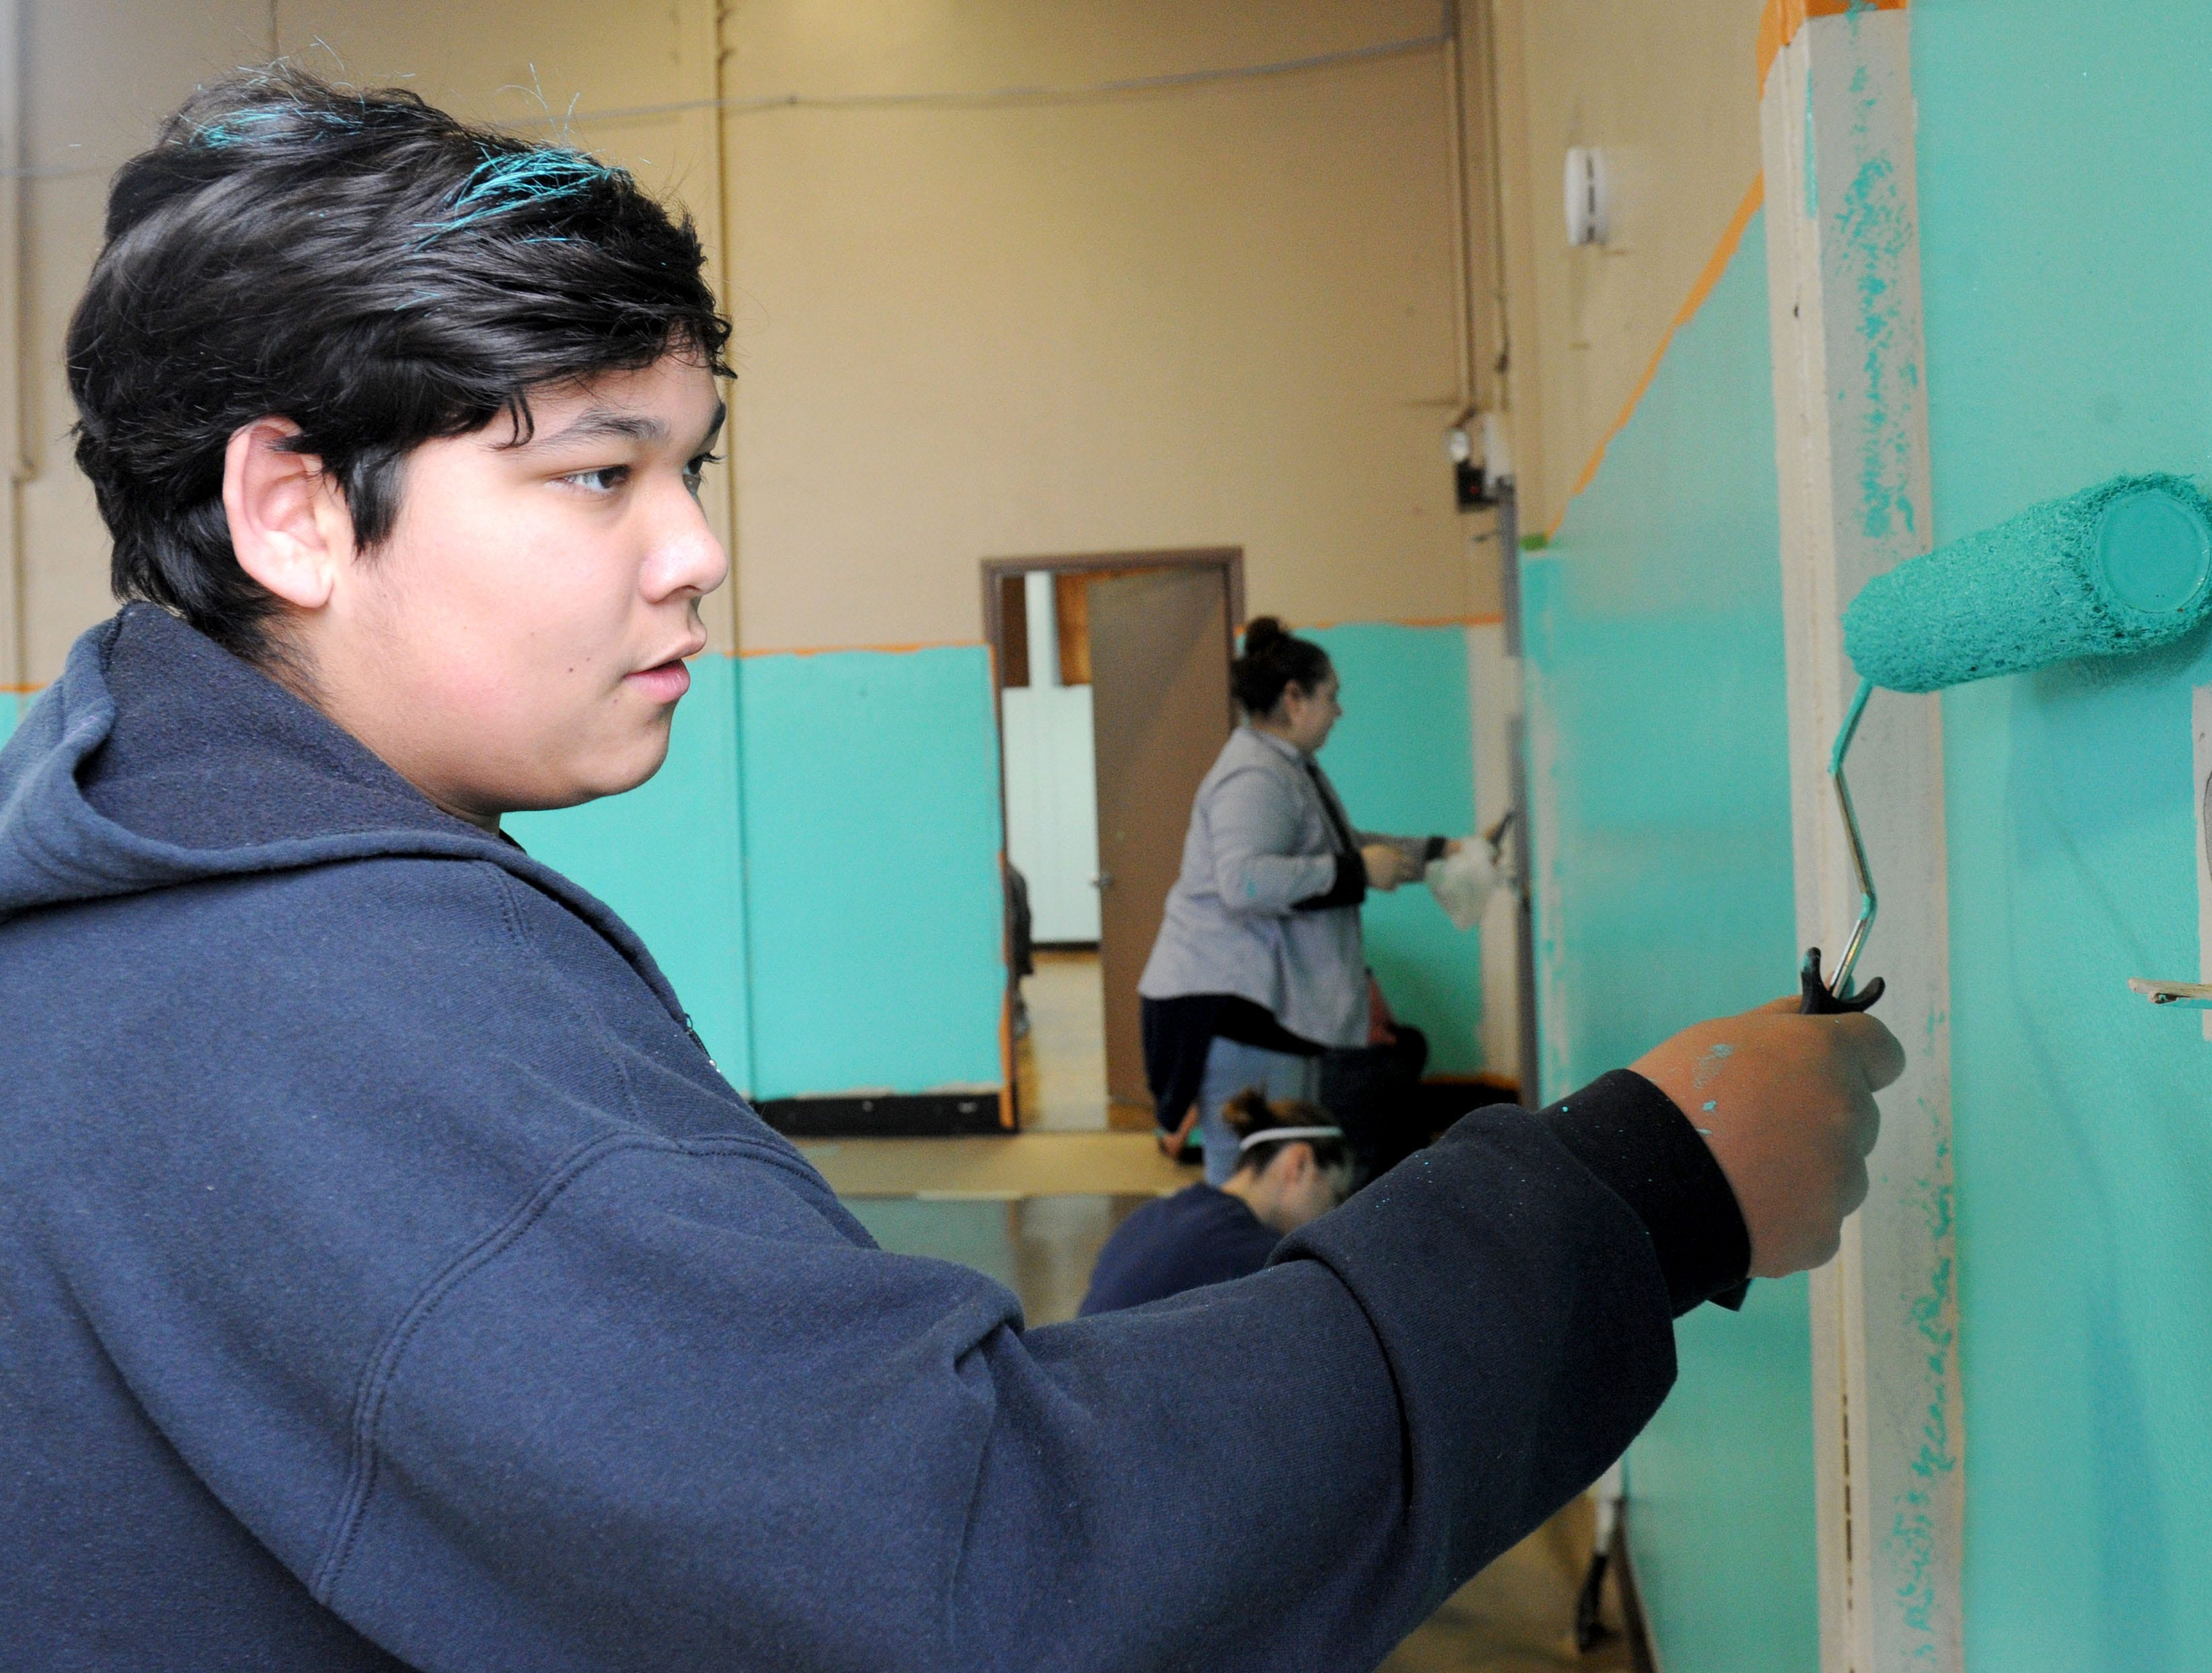 Isaiah Morales, 13, of Ventura helps paint the homeless shelter at the National Guard Armory in Oxnard Saturday morning.